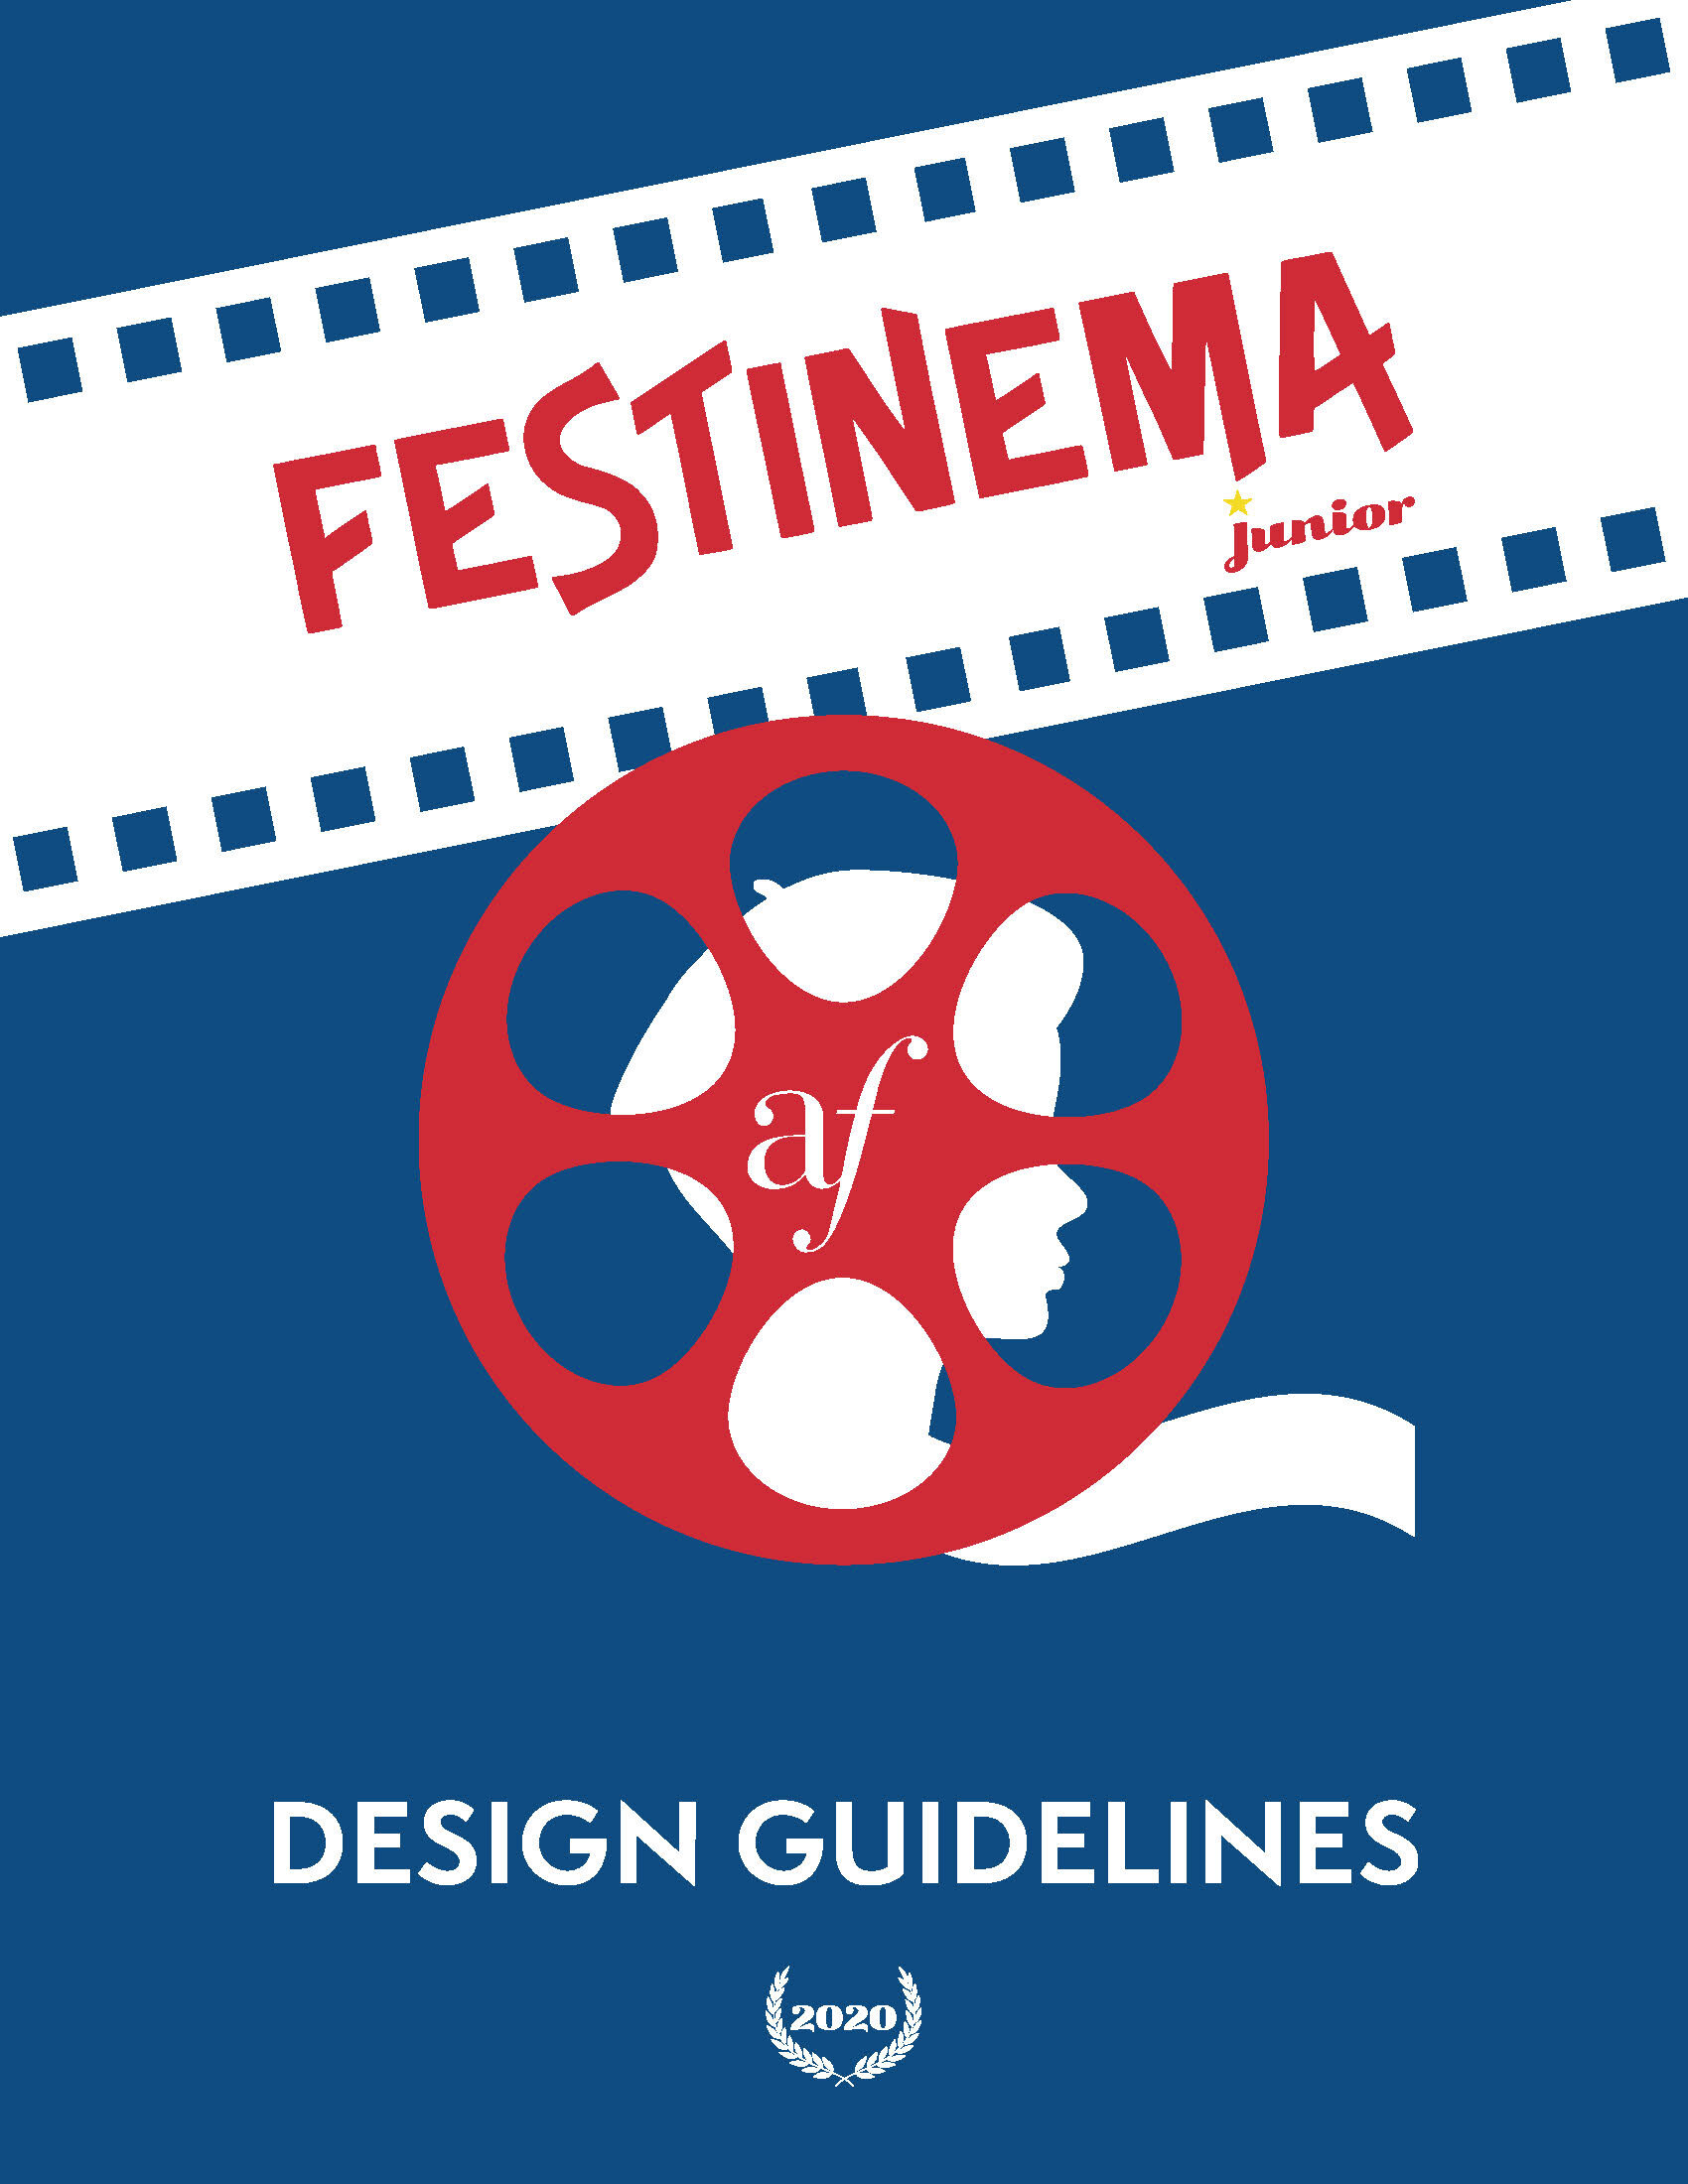 Festinema_2020_Design_Guidelines_Final_Cover_Page.jpg